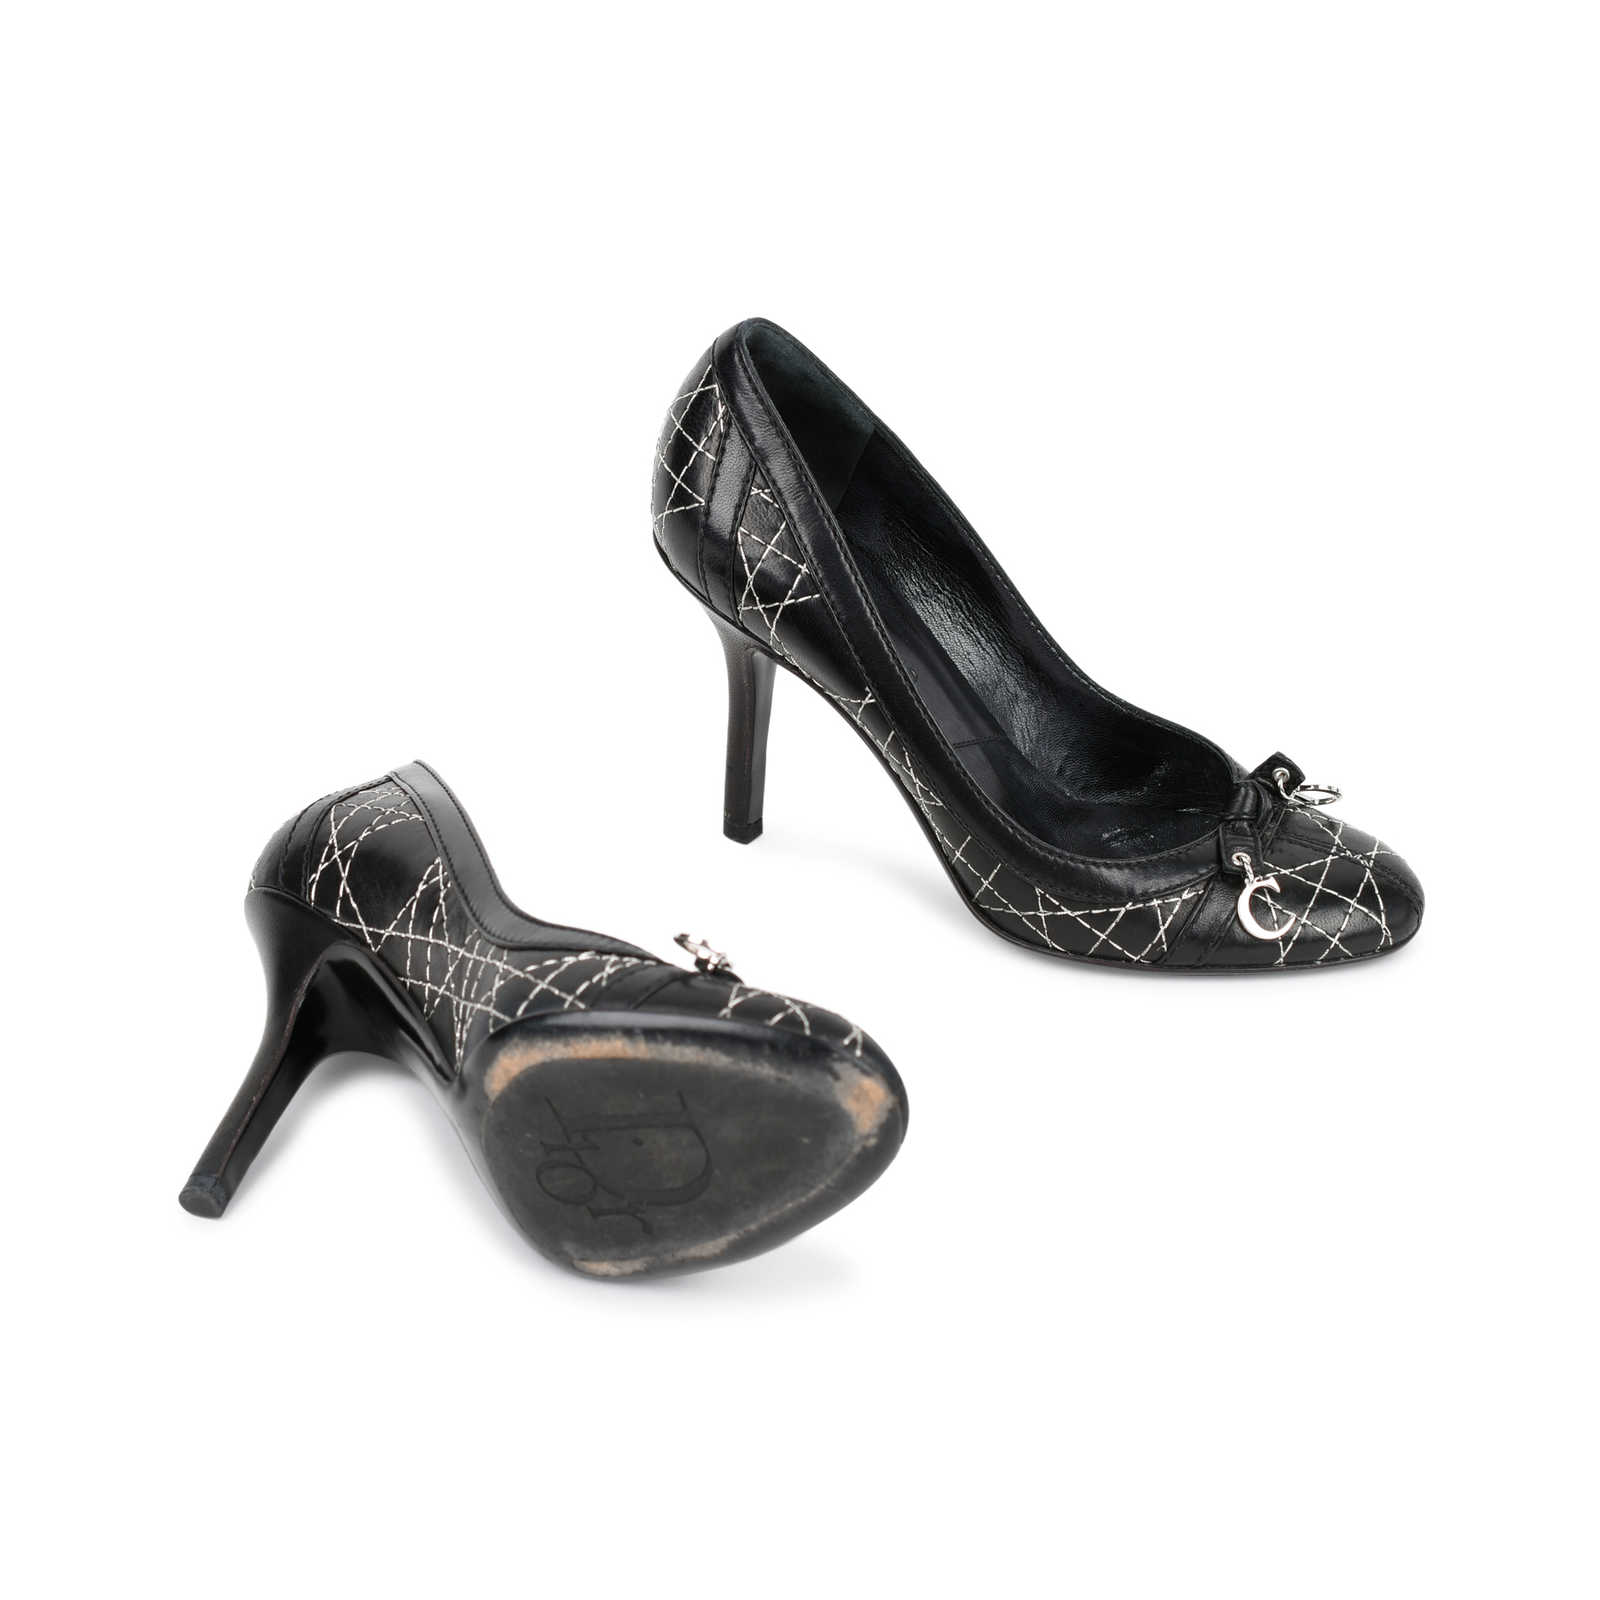 2a649021cb ... Authentic Second Hand Christian Dior Cannage Quilted Pumps  (PSS-462-00006) ...